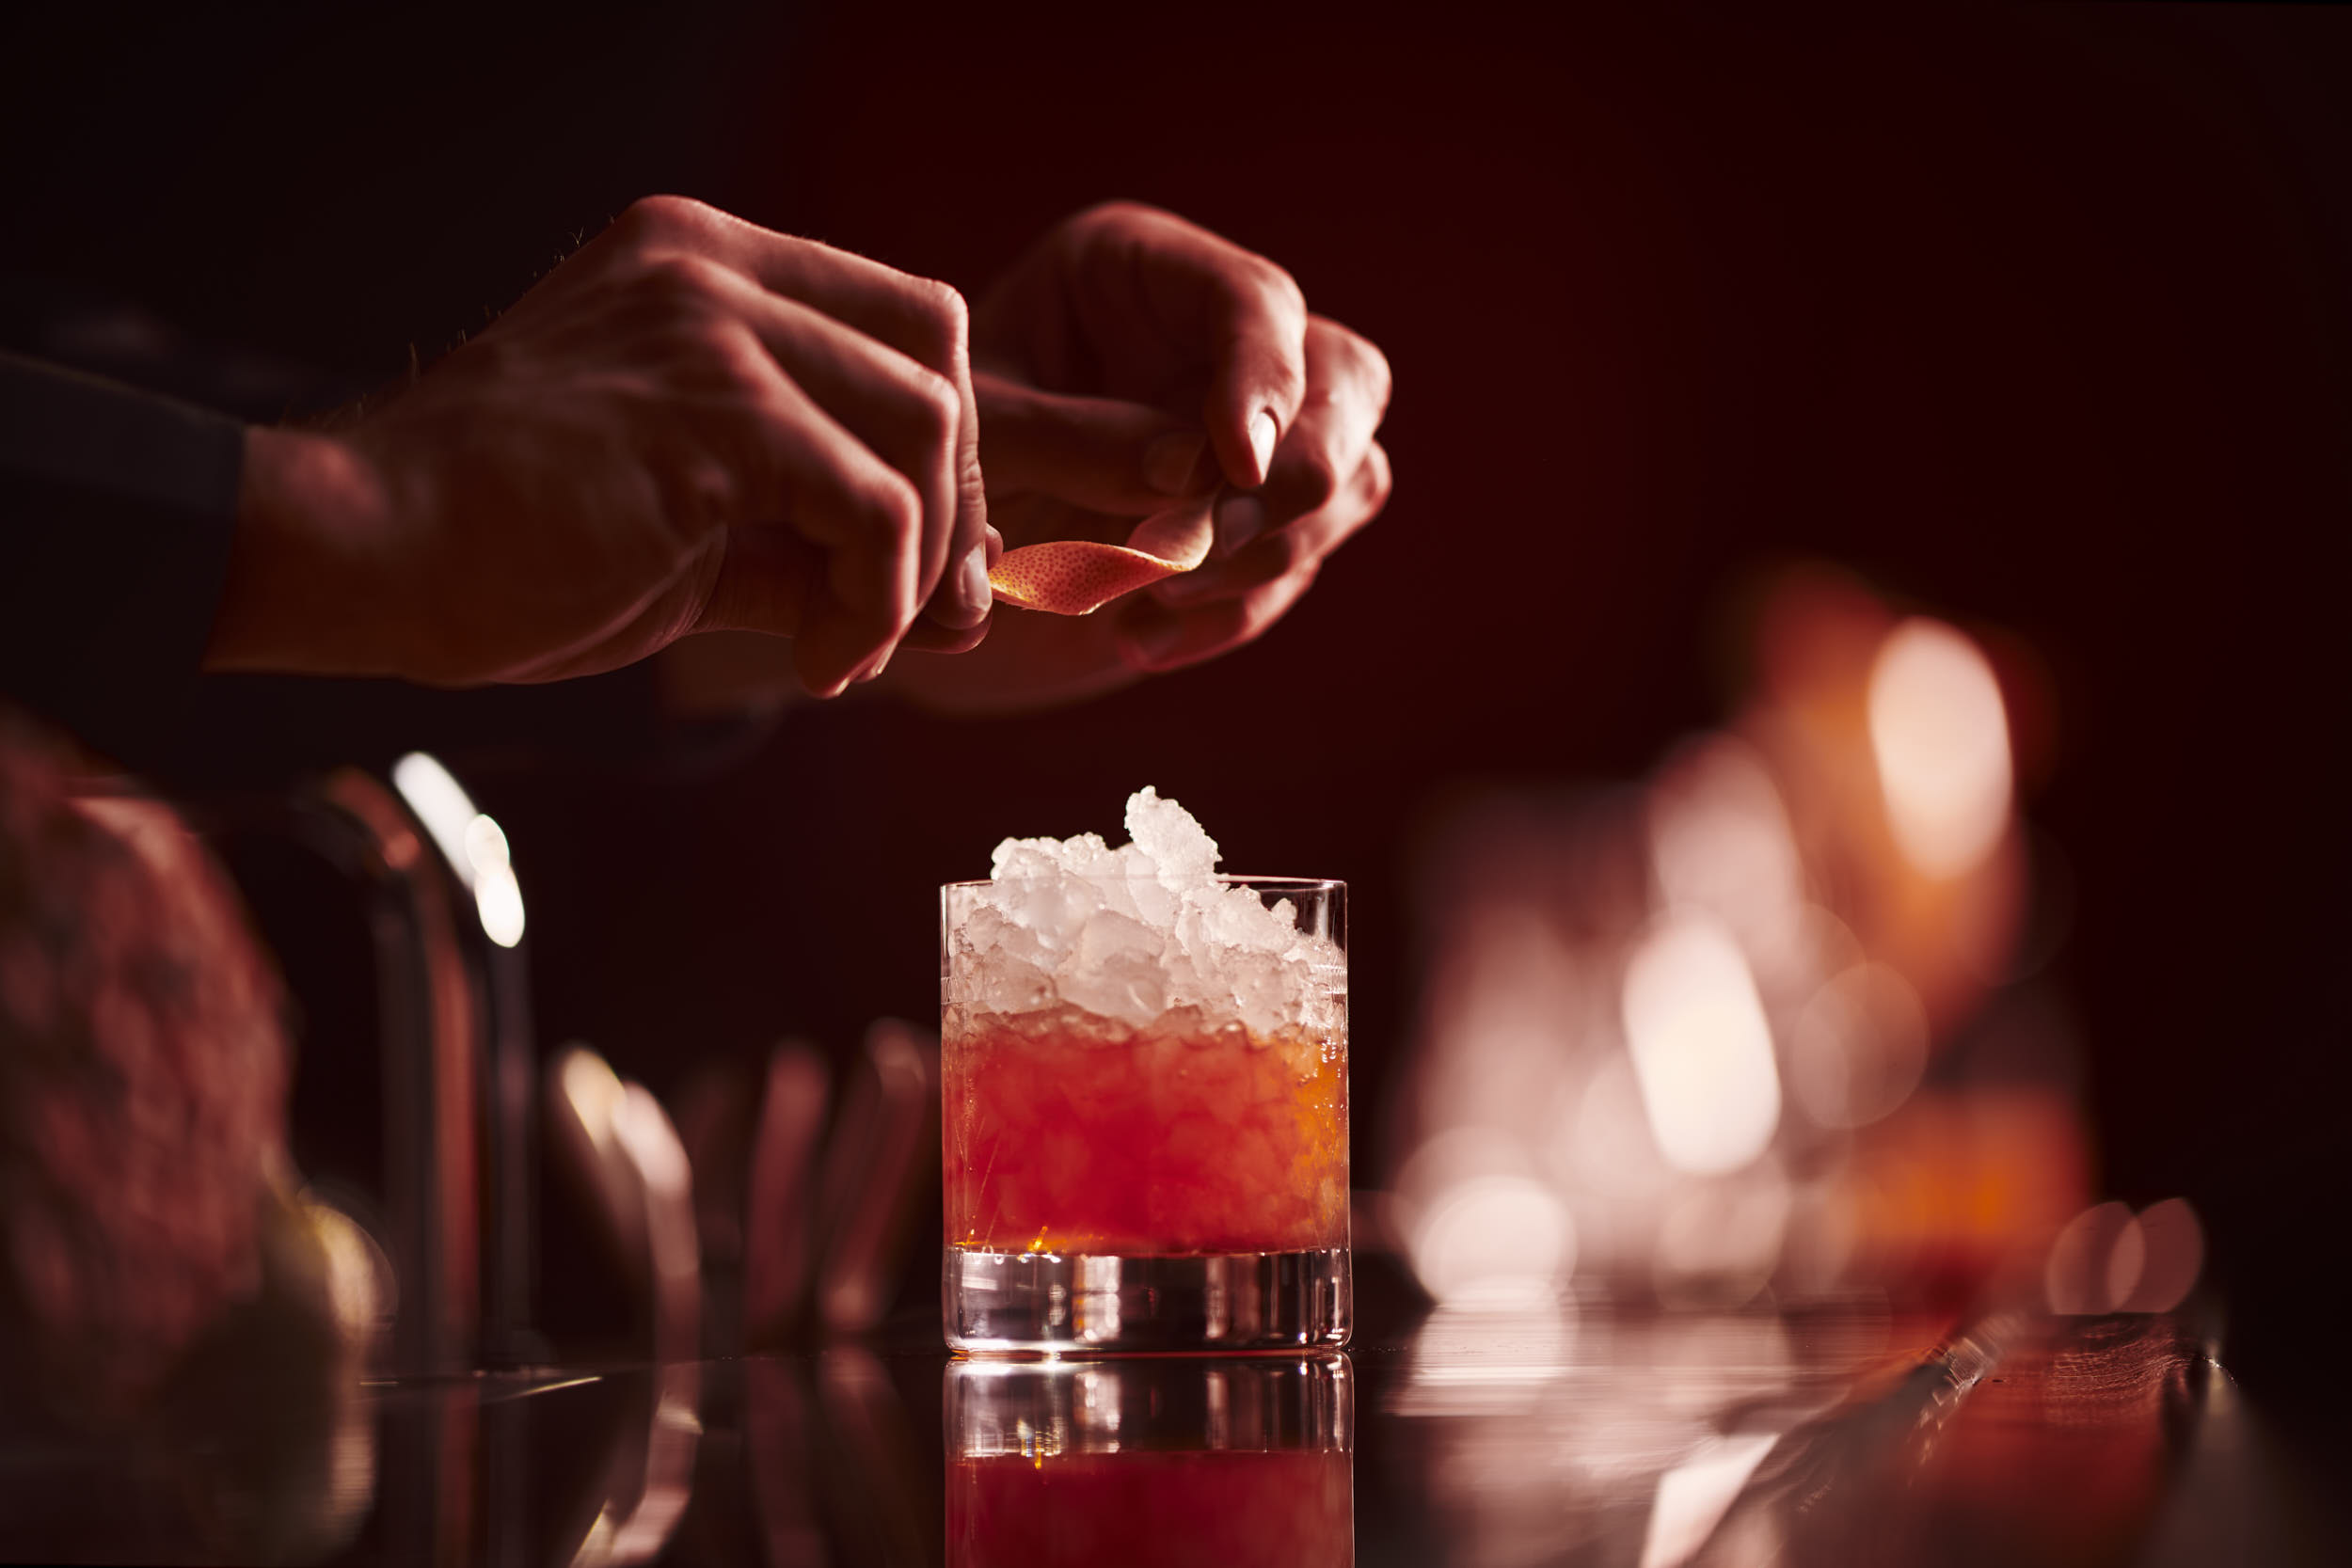 luxury hotel  photographer matthew lloyd shoots peninsula paris for their food and drinks advertising photography